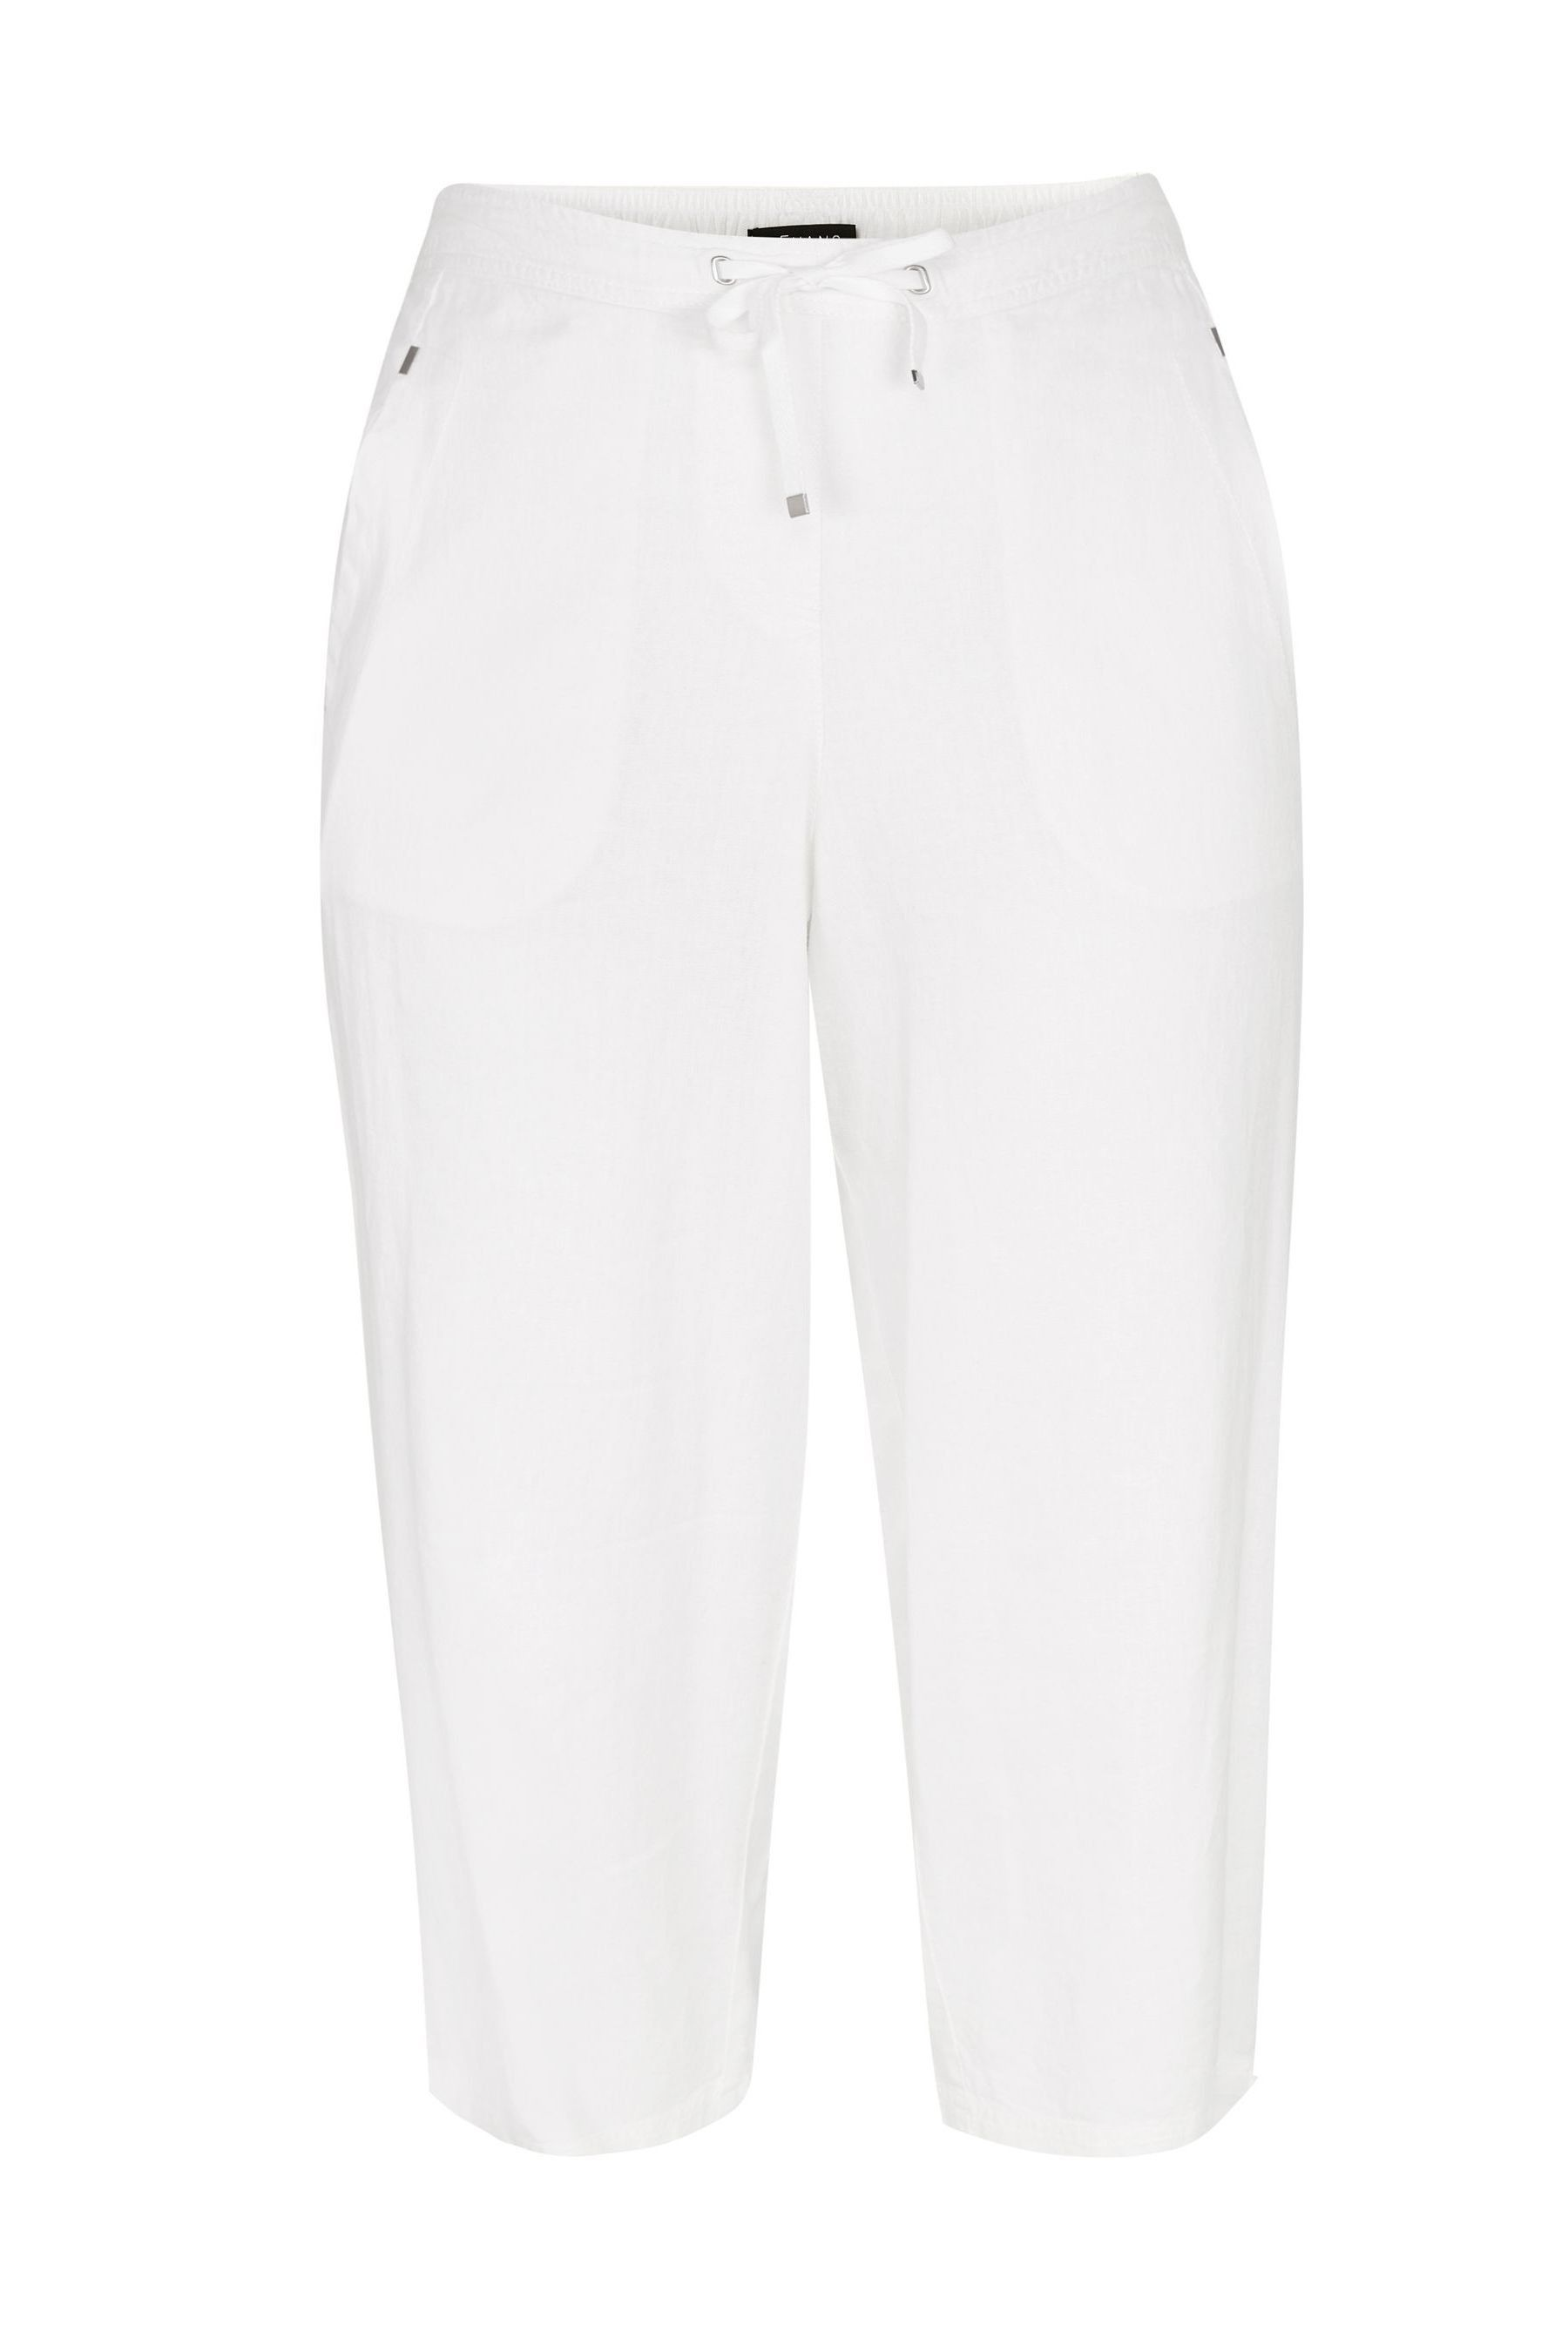 wholesale sales super cheap great prices Evans Curve White Linen Blend Crop Trouser | Cropped trousers ...